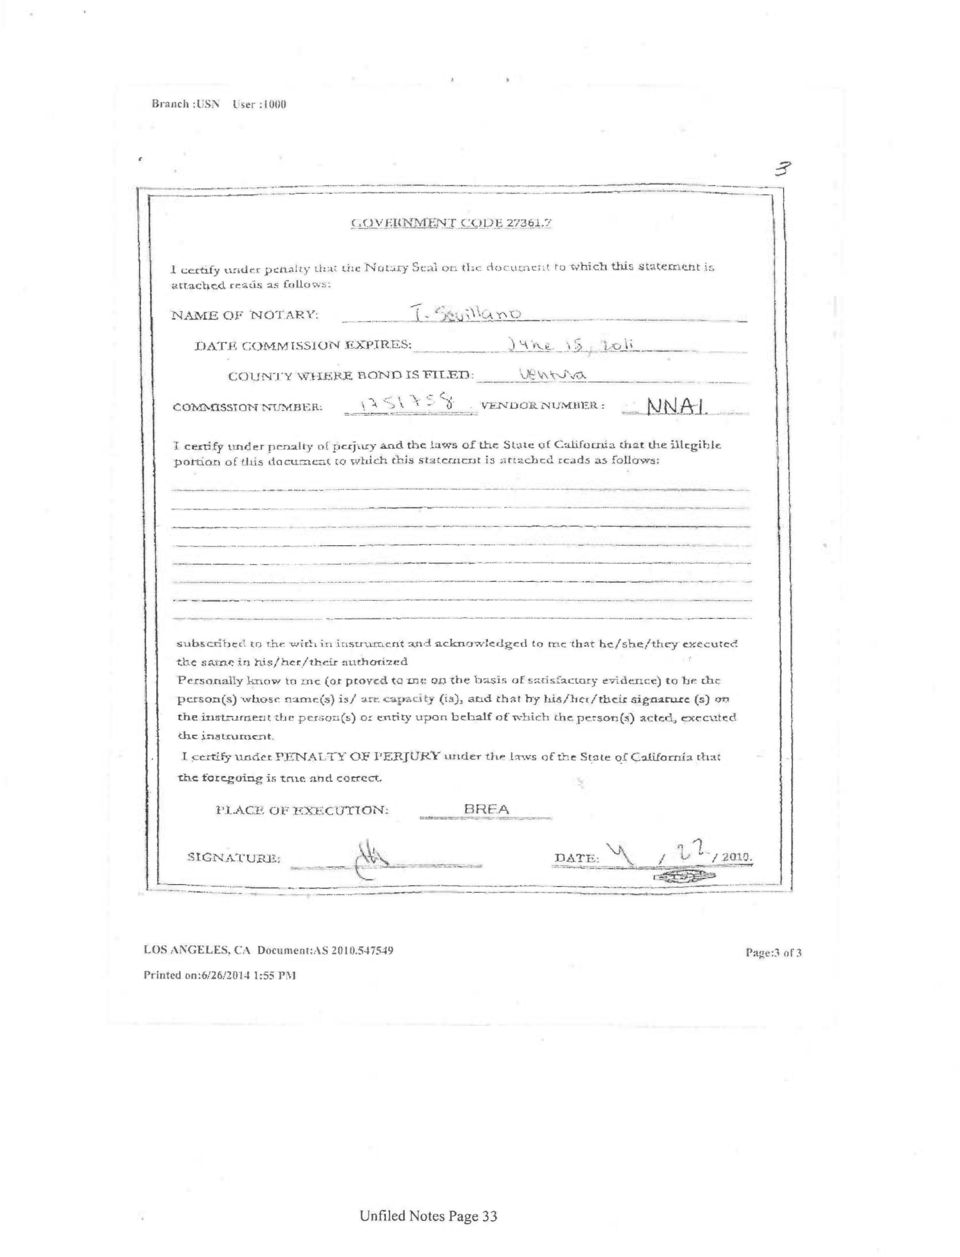 IA.J. certify under penalty of pe_rjury and the laws of the State of California that the illegible portion of this document to which this statentrxit i 5 attached reads as follows: subscribed to the